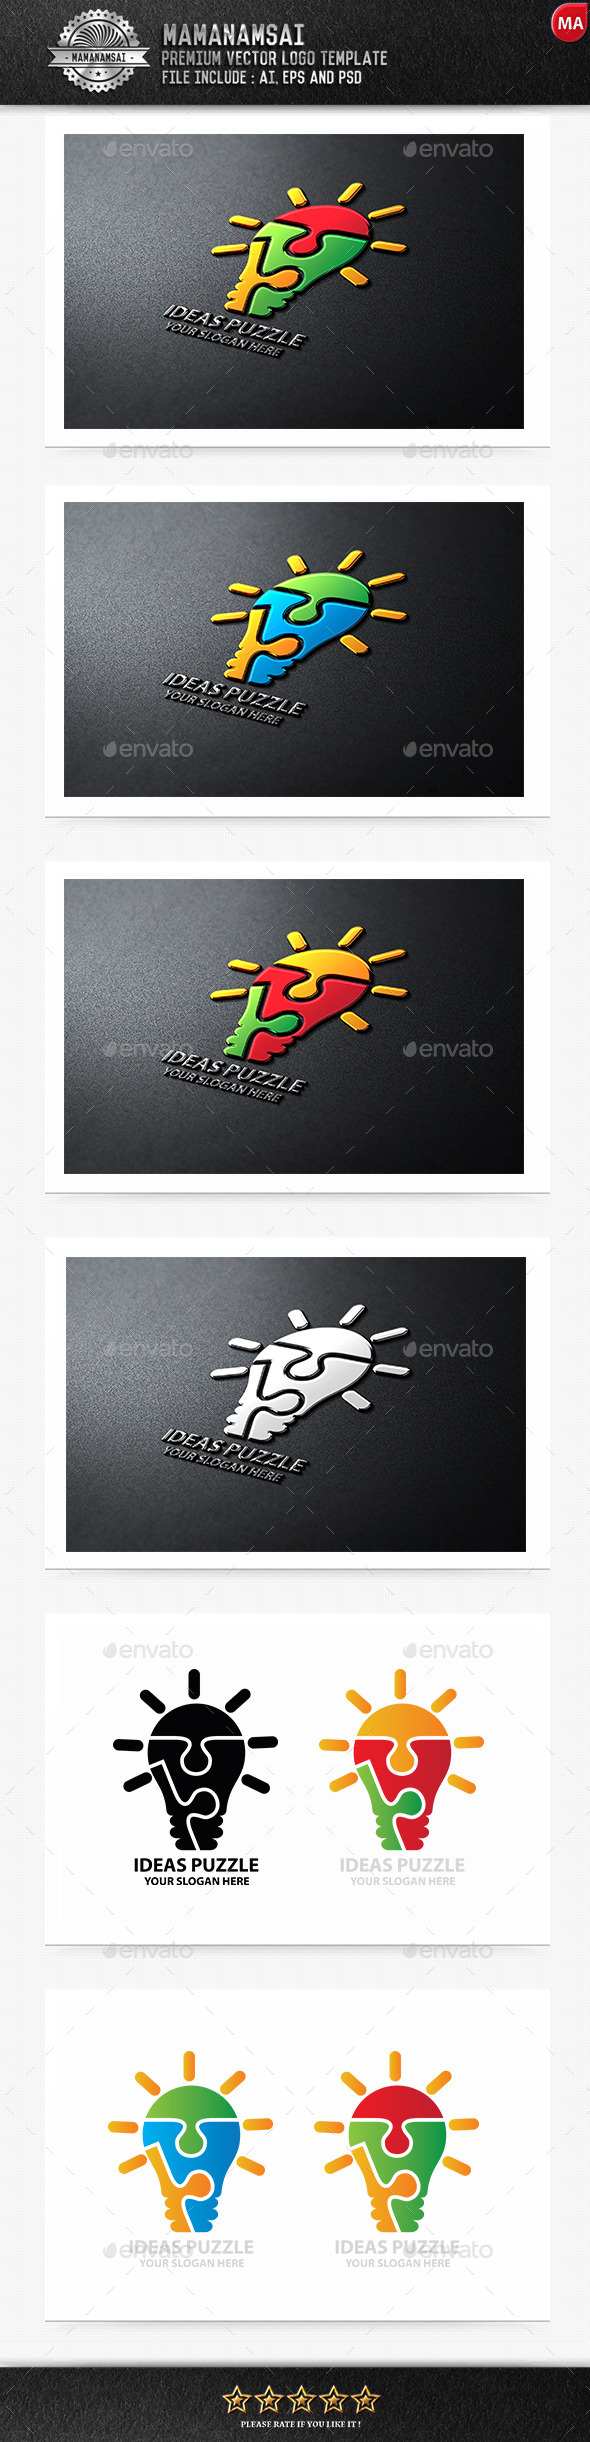 GraphicRiver Idea Puzzle Logo 9671154